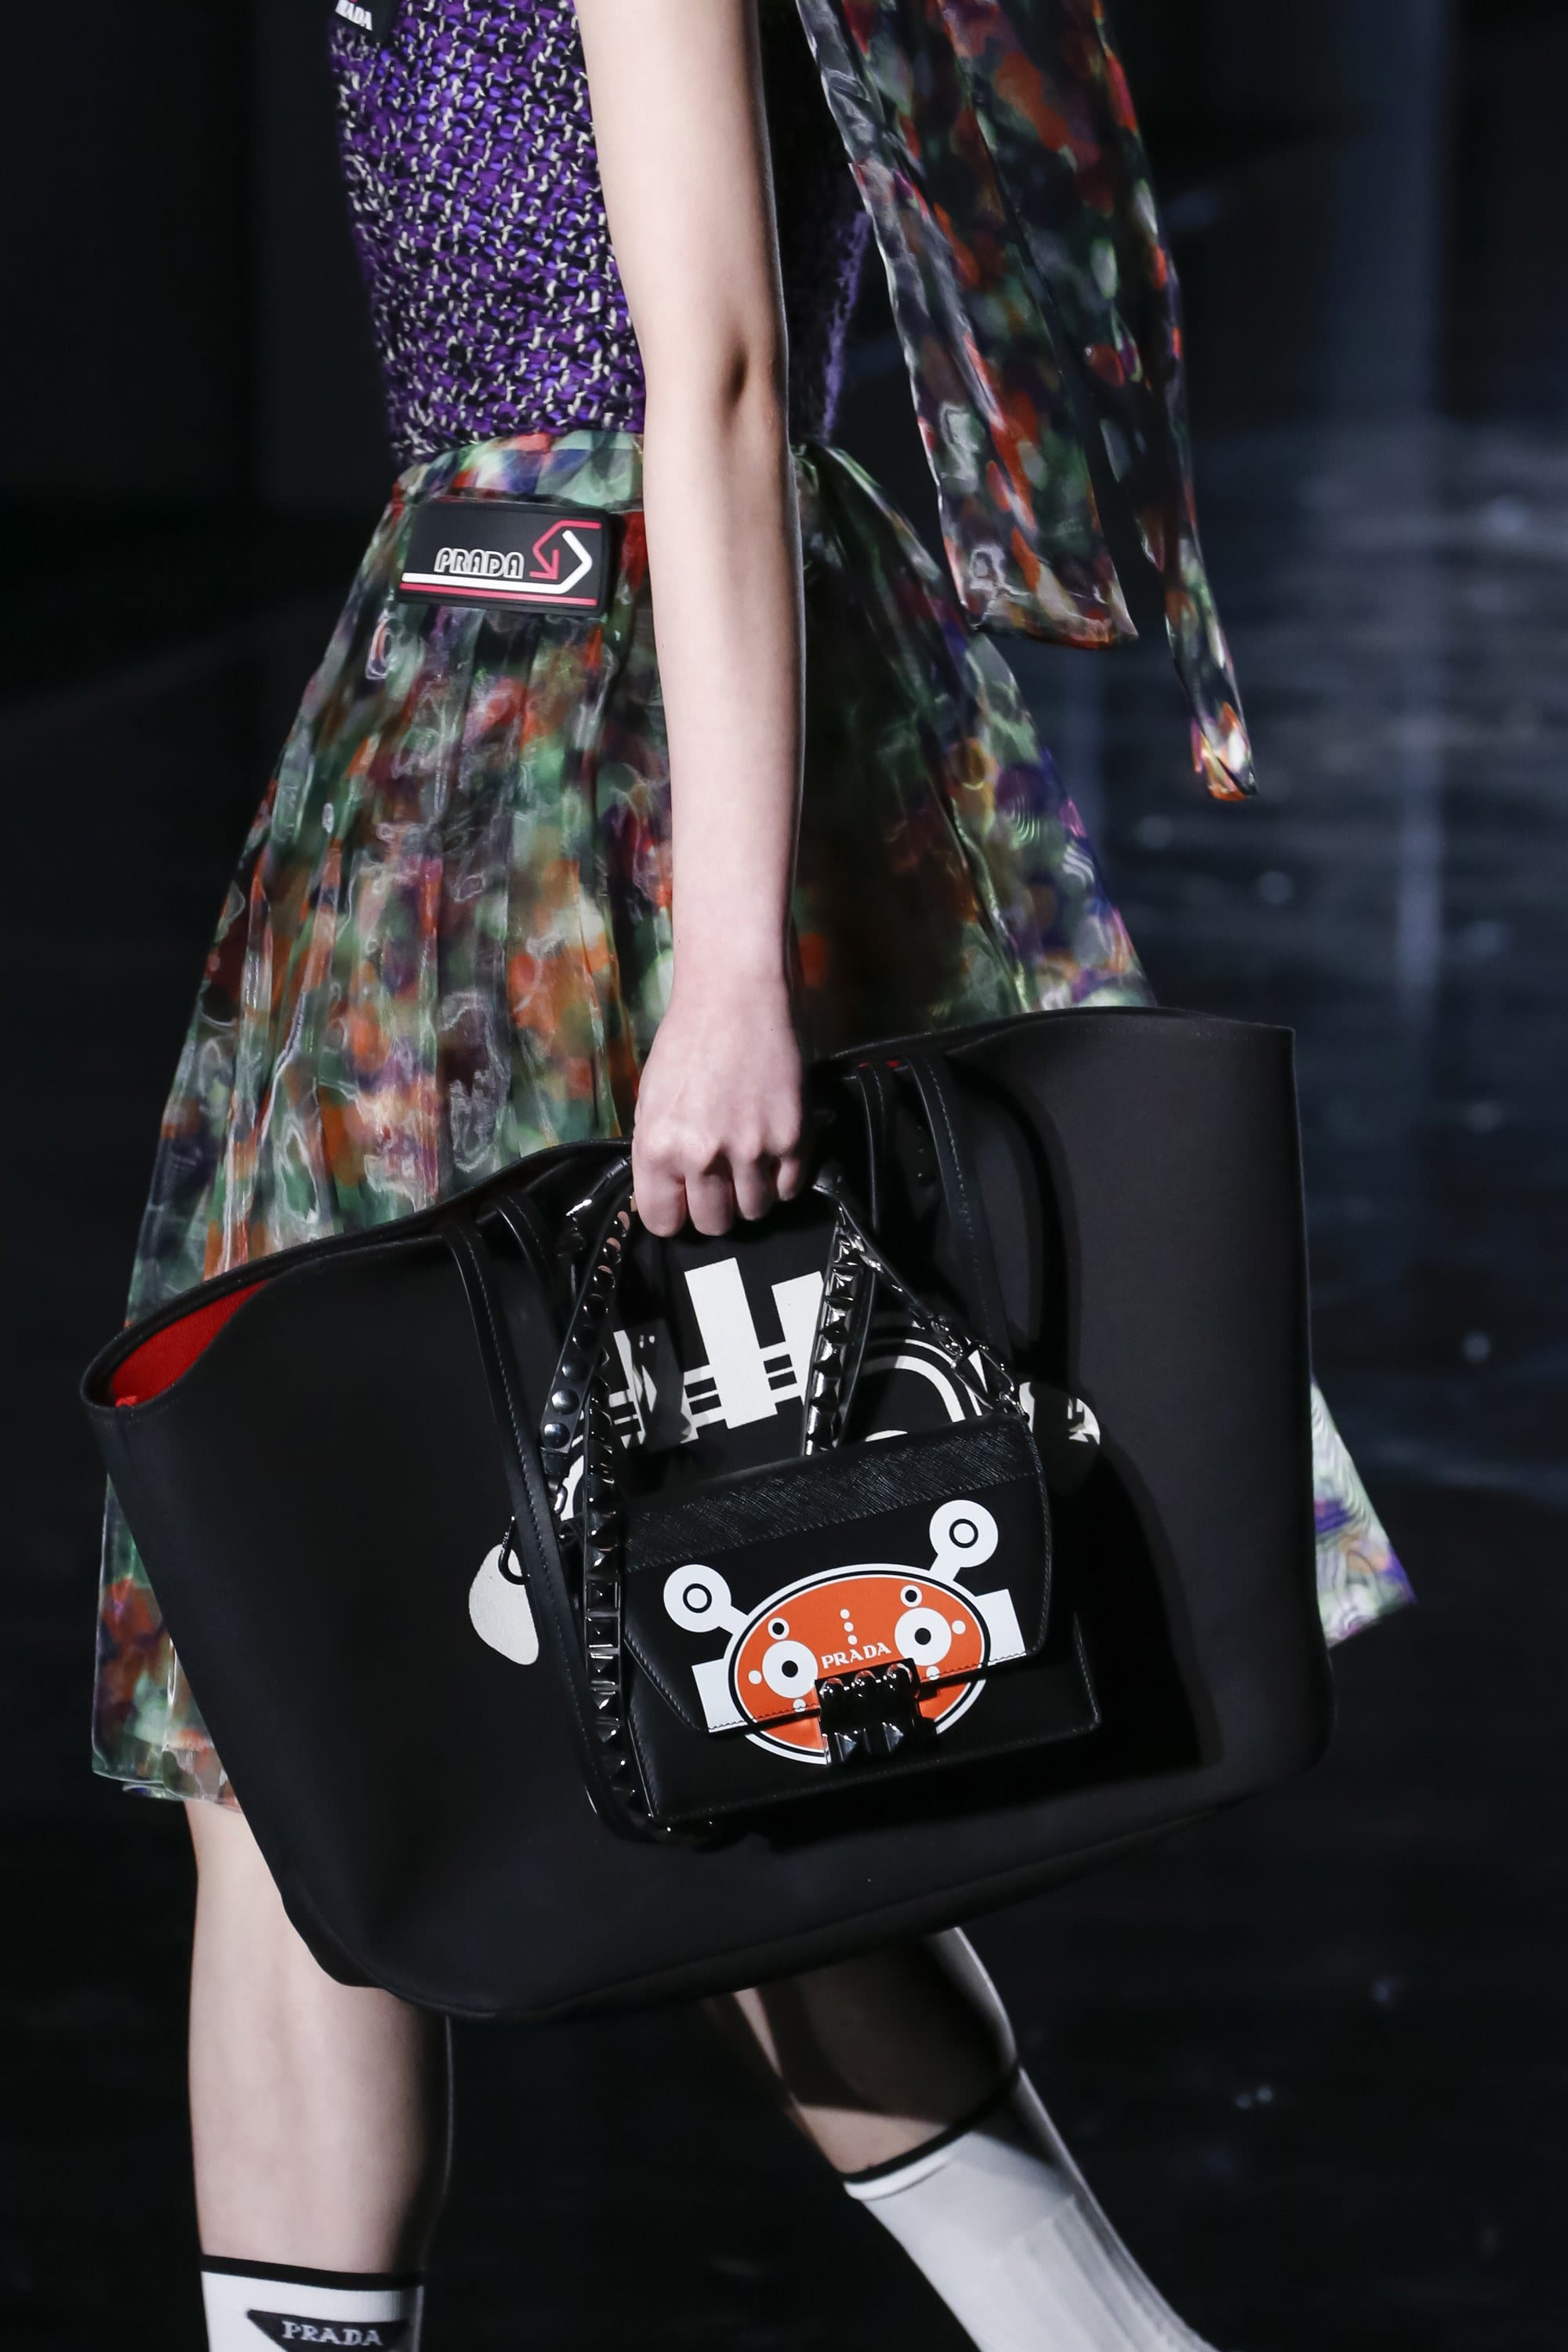 01d3c352b4 Prada Black Robot Printed Mini Flap and Tote Bags - Fall 2018